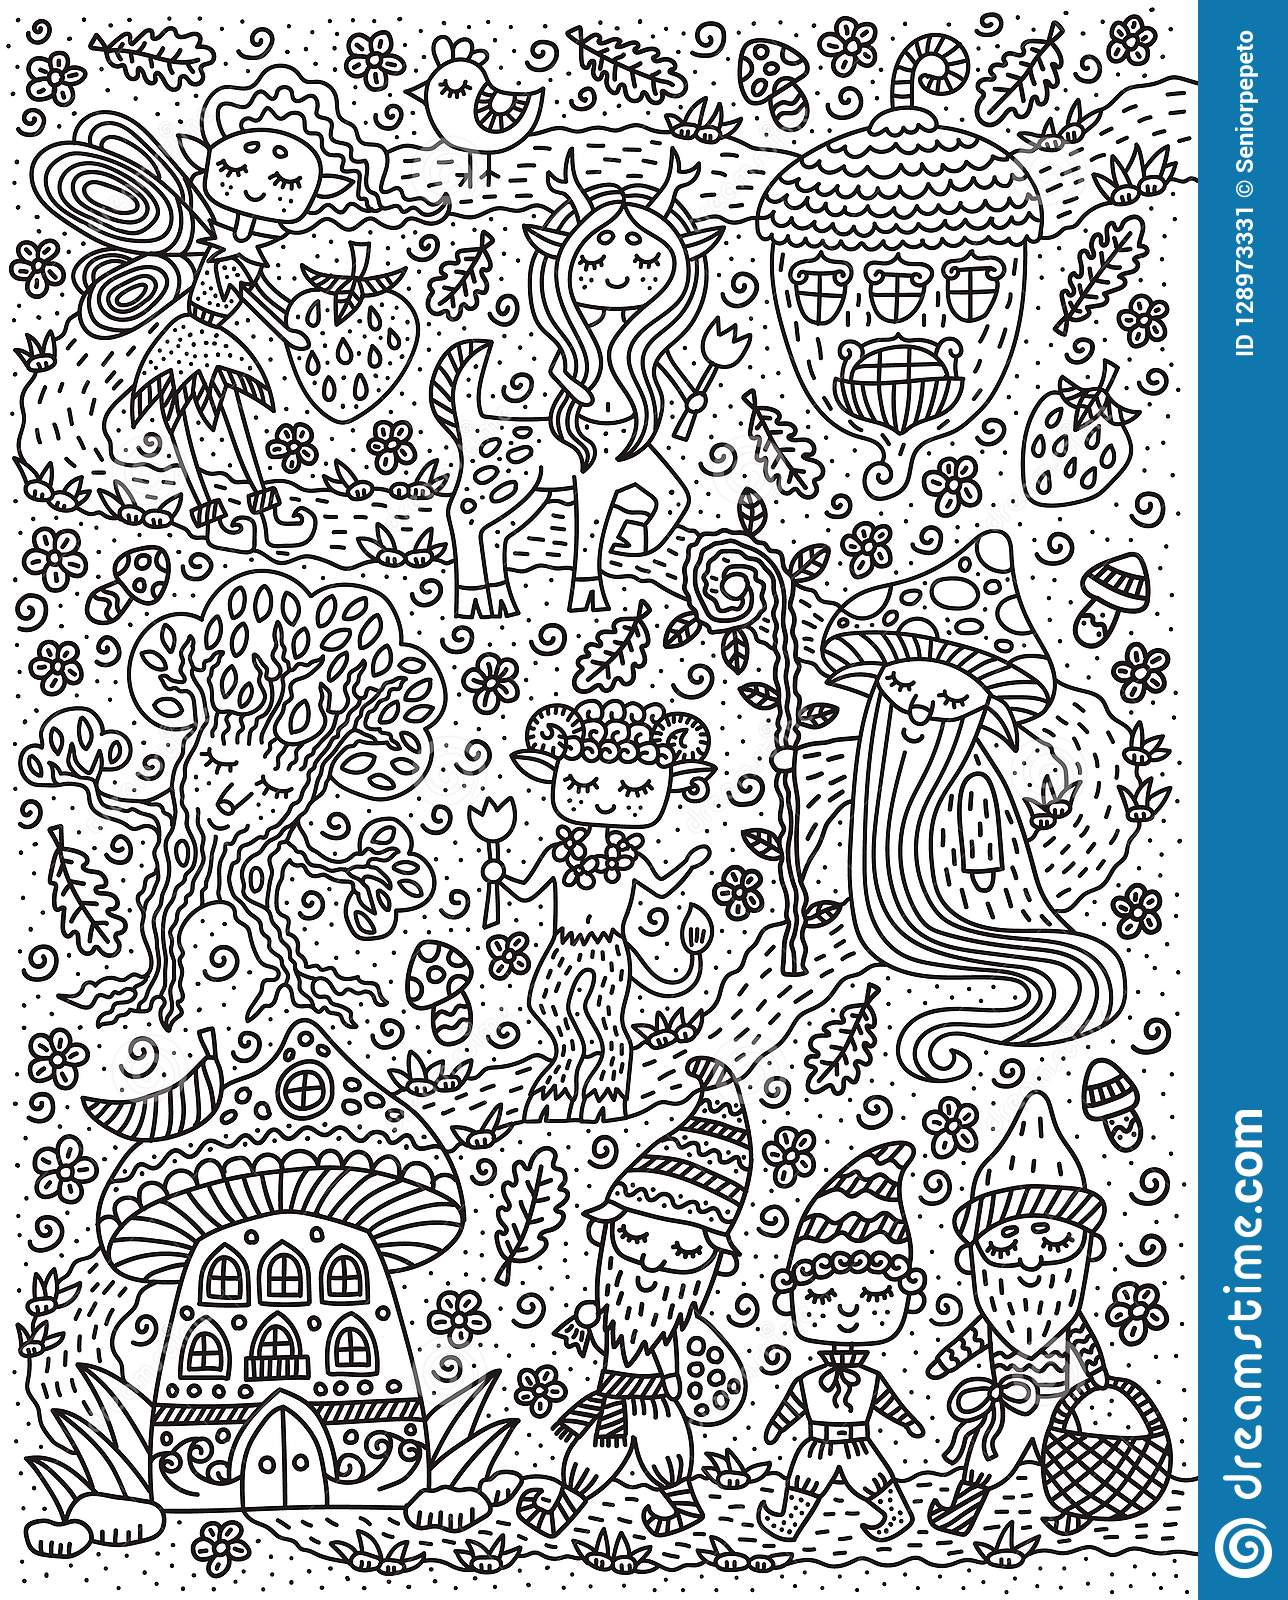 Forest fairy tale. Fairy, gnome, mage, mushroom, acorn, centaur, tree. Coloring book page. Outline drawing. Vector illustration